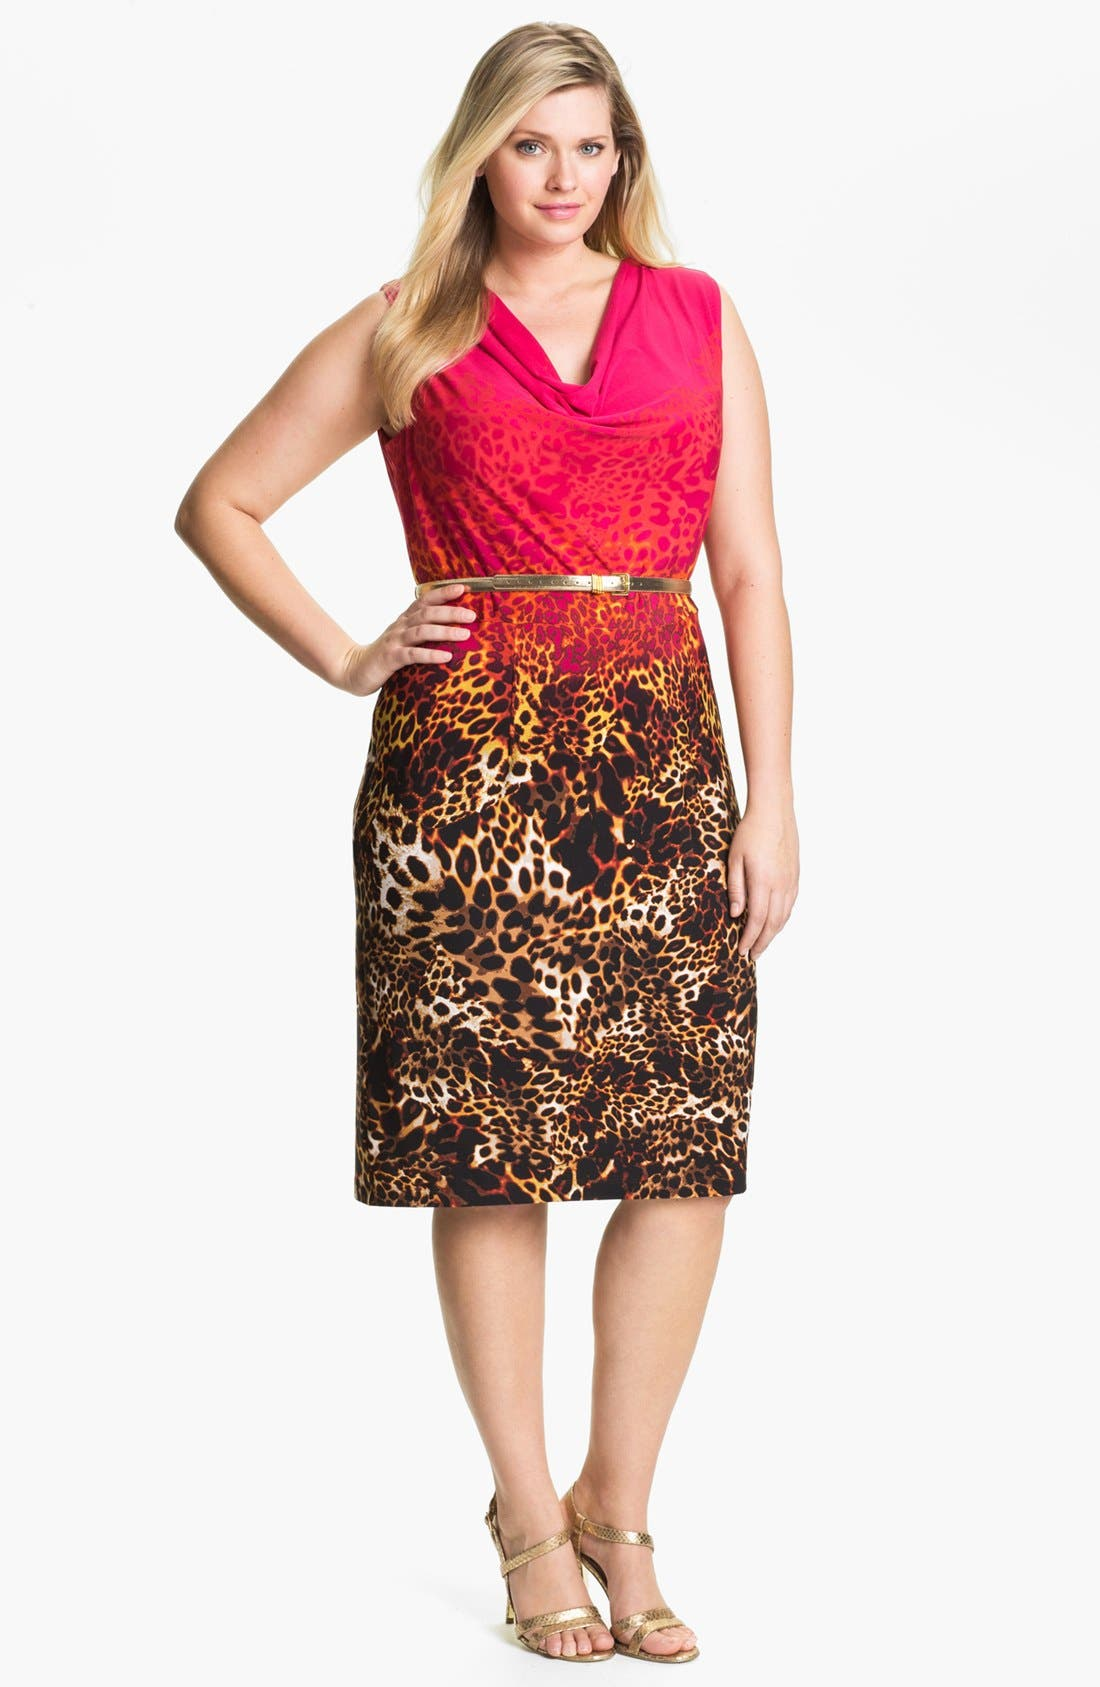 Main Image - Calvin Klein Cowl Neck Print Sheath Dress (Plus Size)